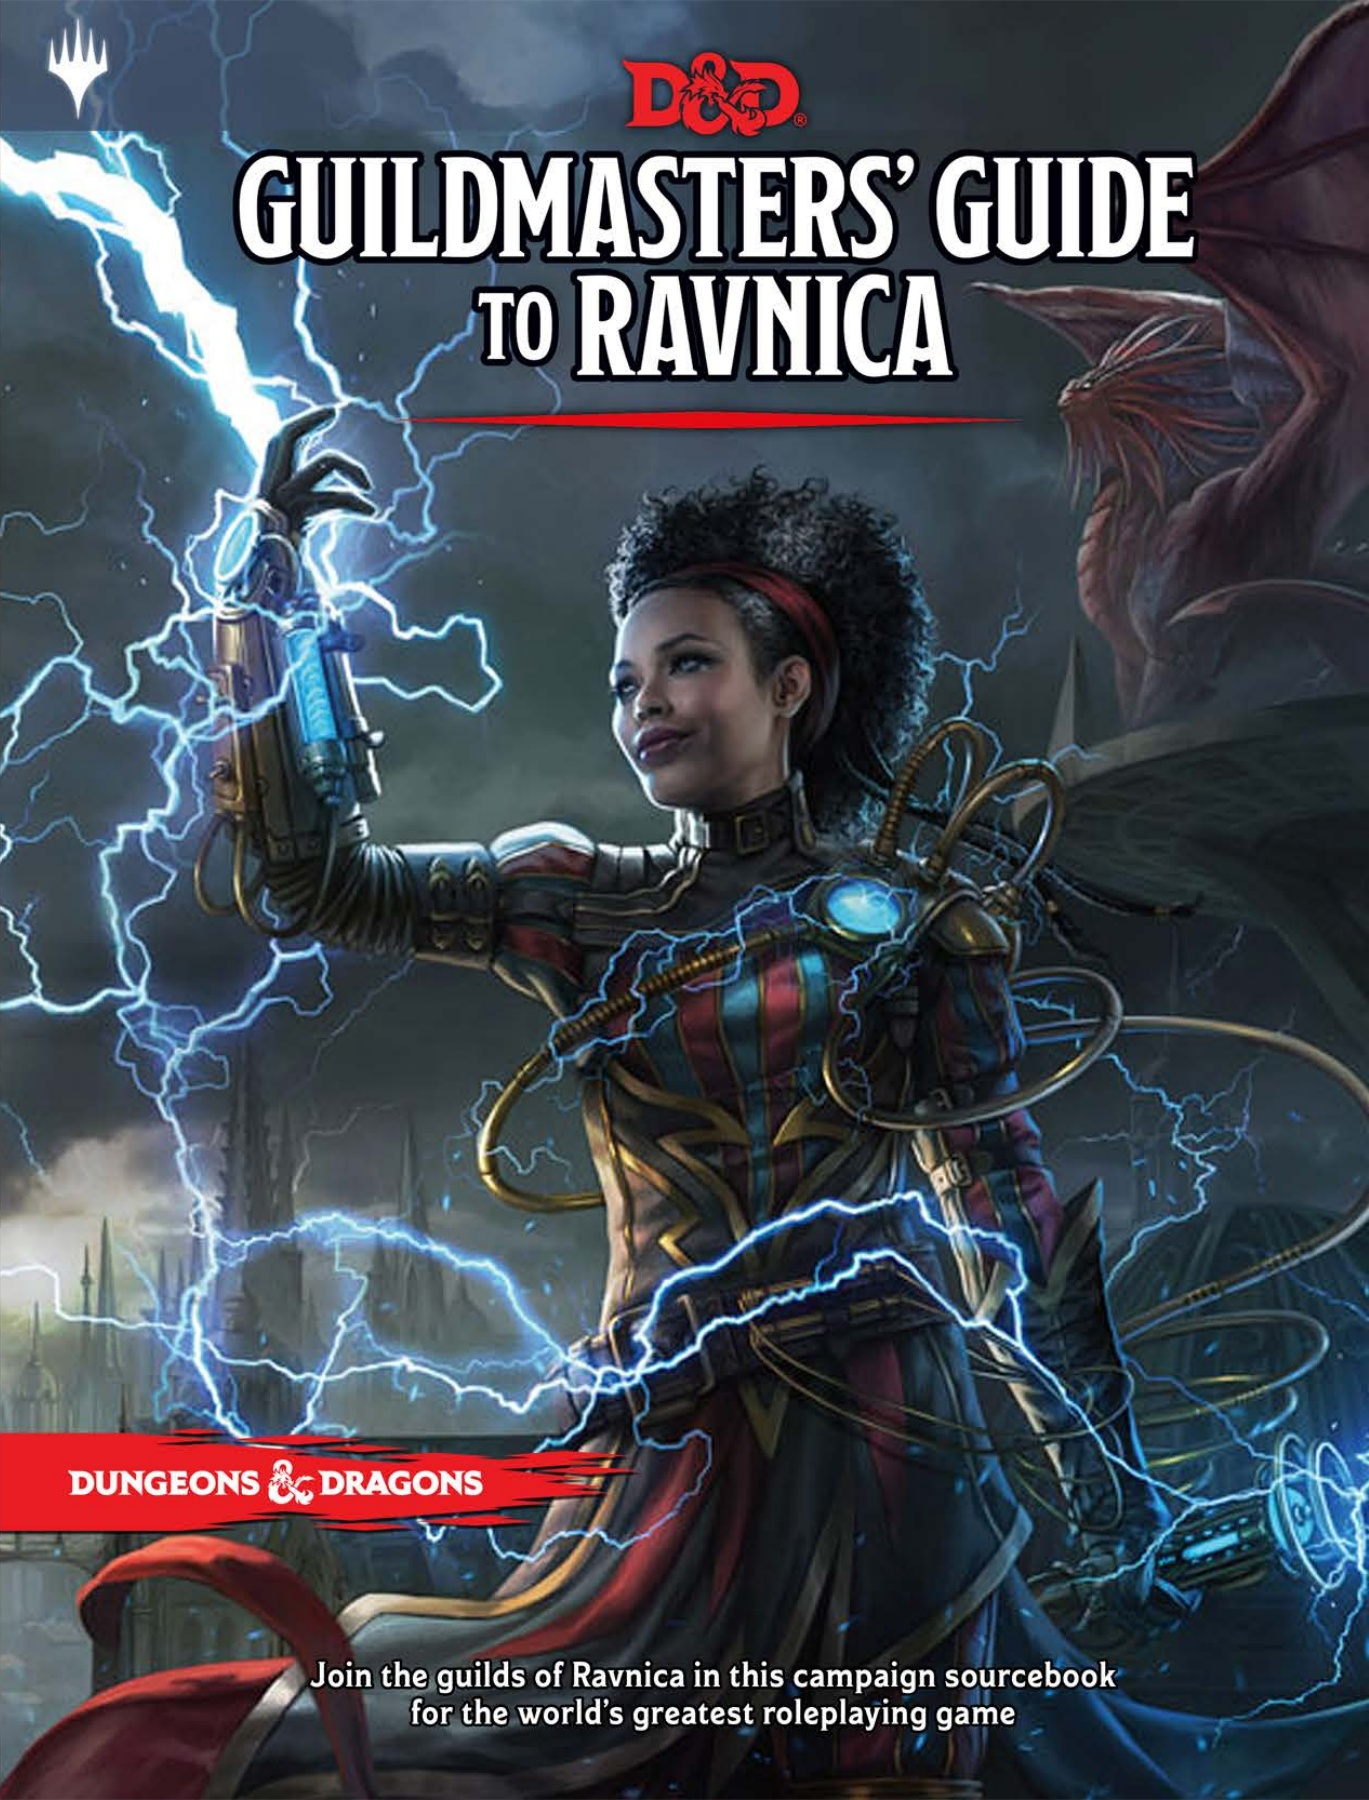 Dnd 5e Guildmaster S Guide To Ravnica Pages 1 50 Text Version Anyflip Posted in limited information on april 3, 2013. anyflip